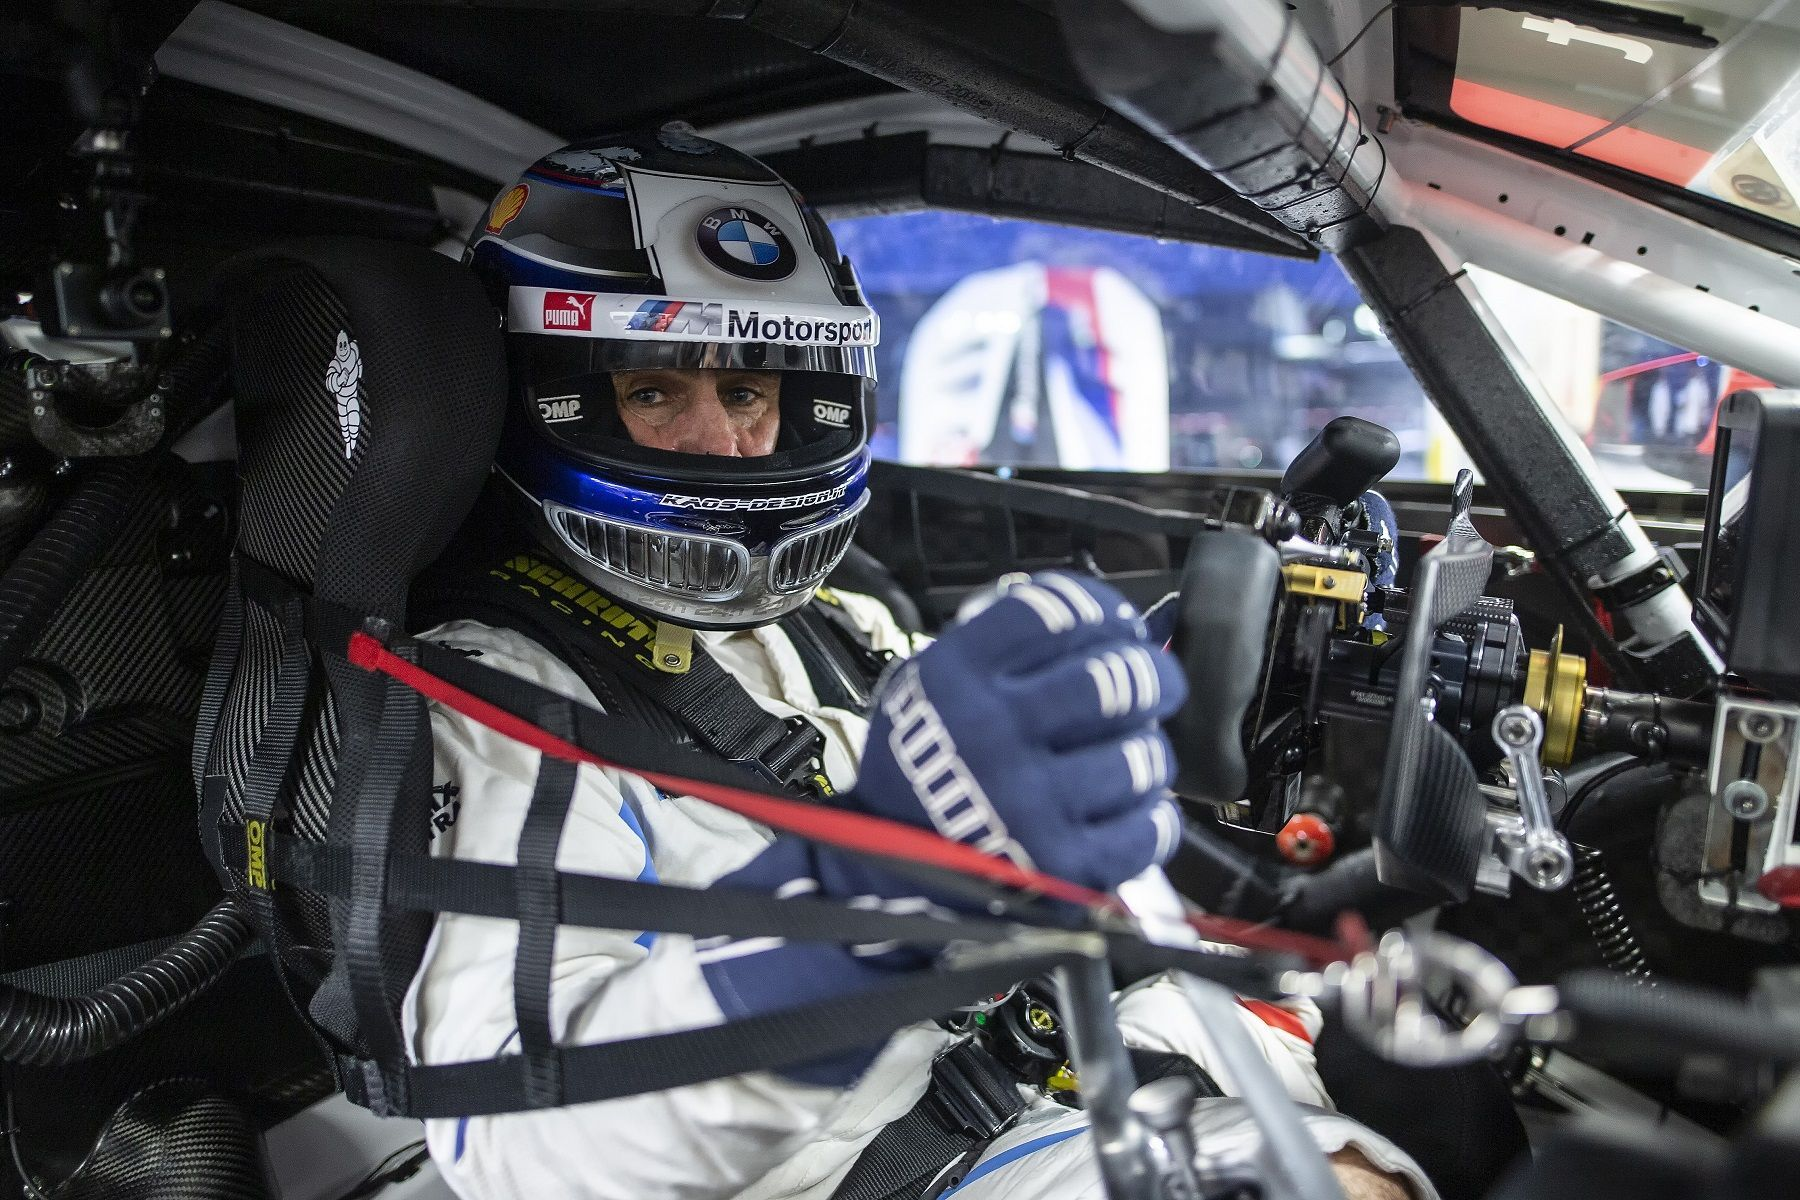 New brake system by BMW is a '100% success', feels Zanardi after test